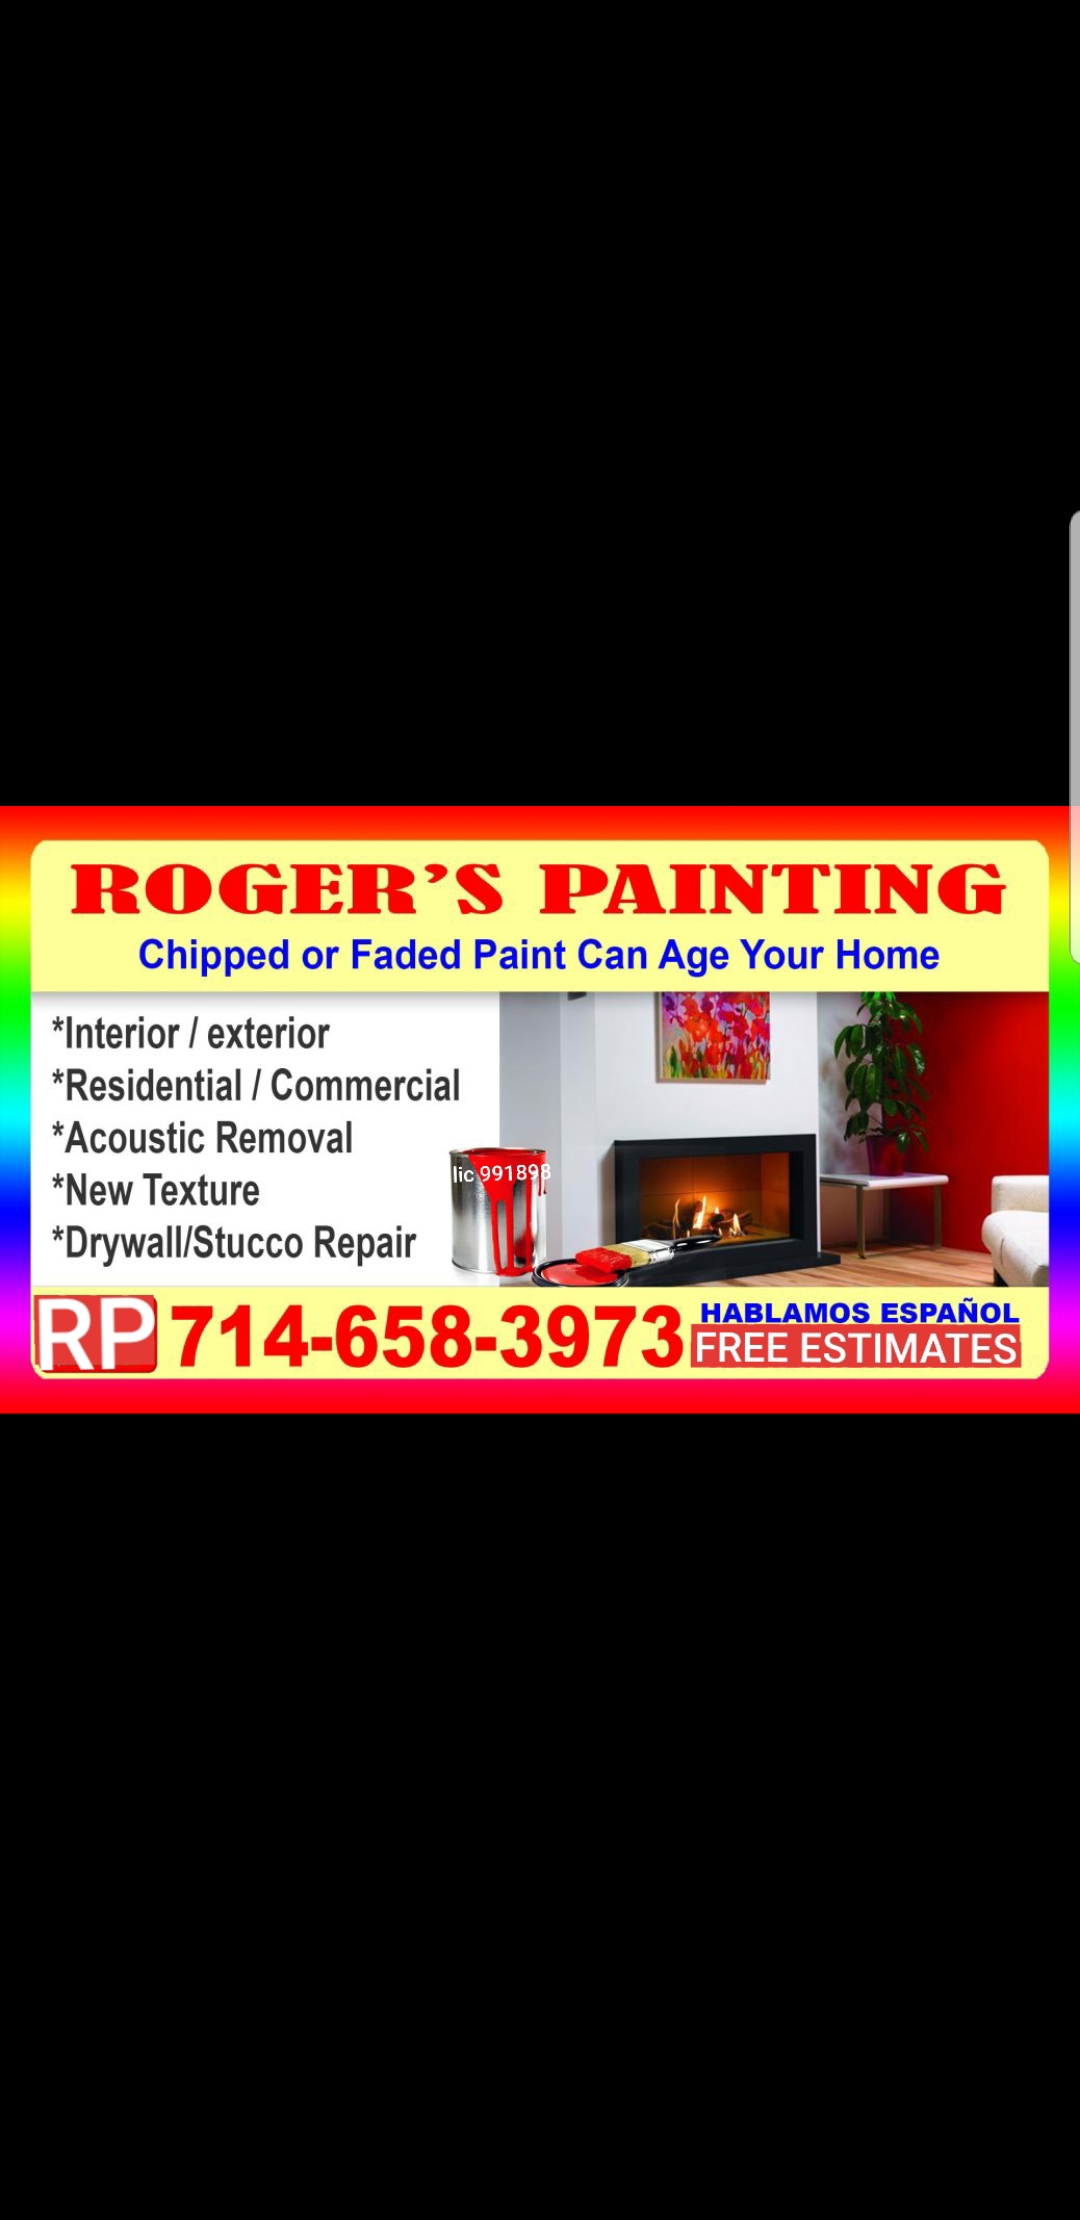 Rogers painting